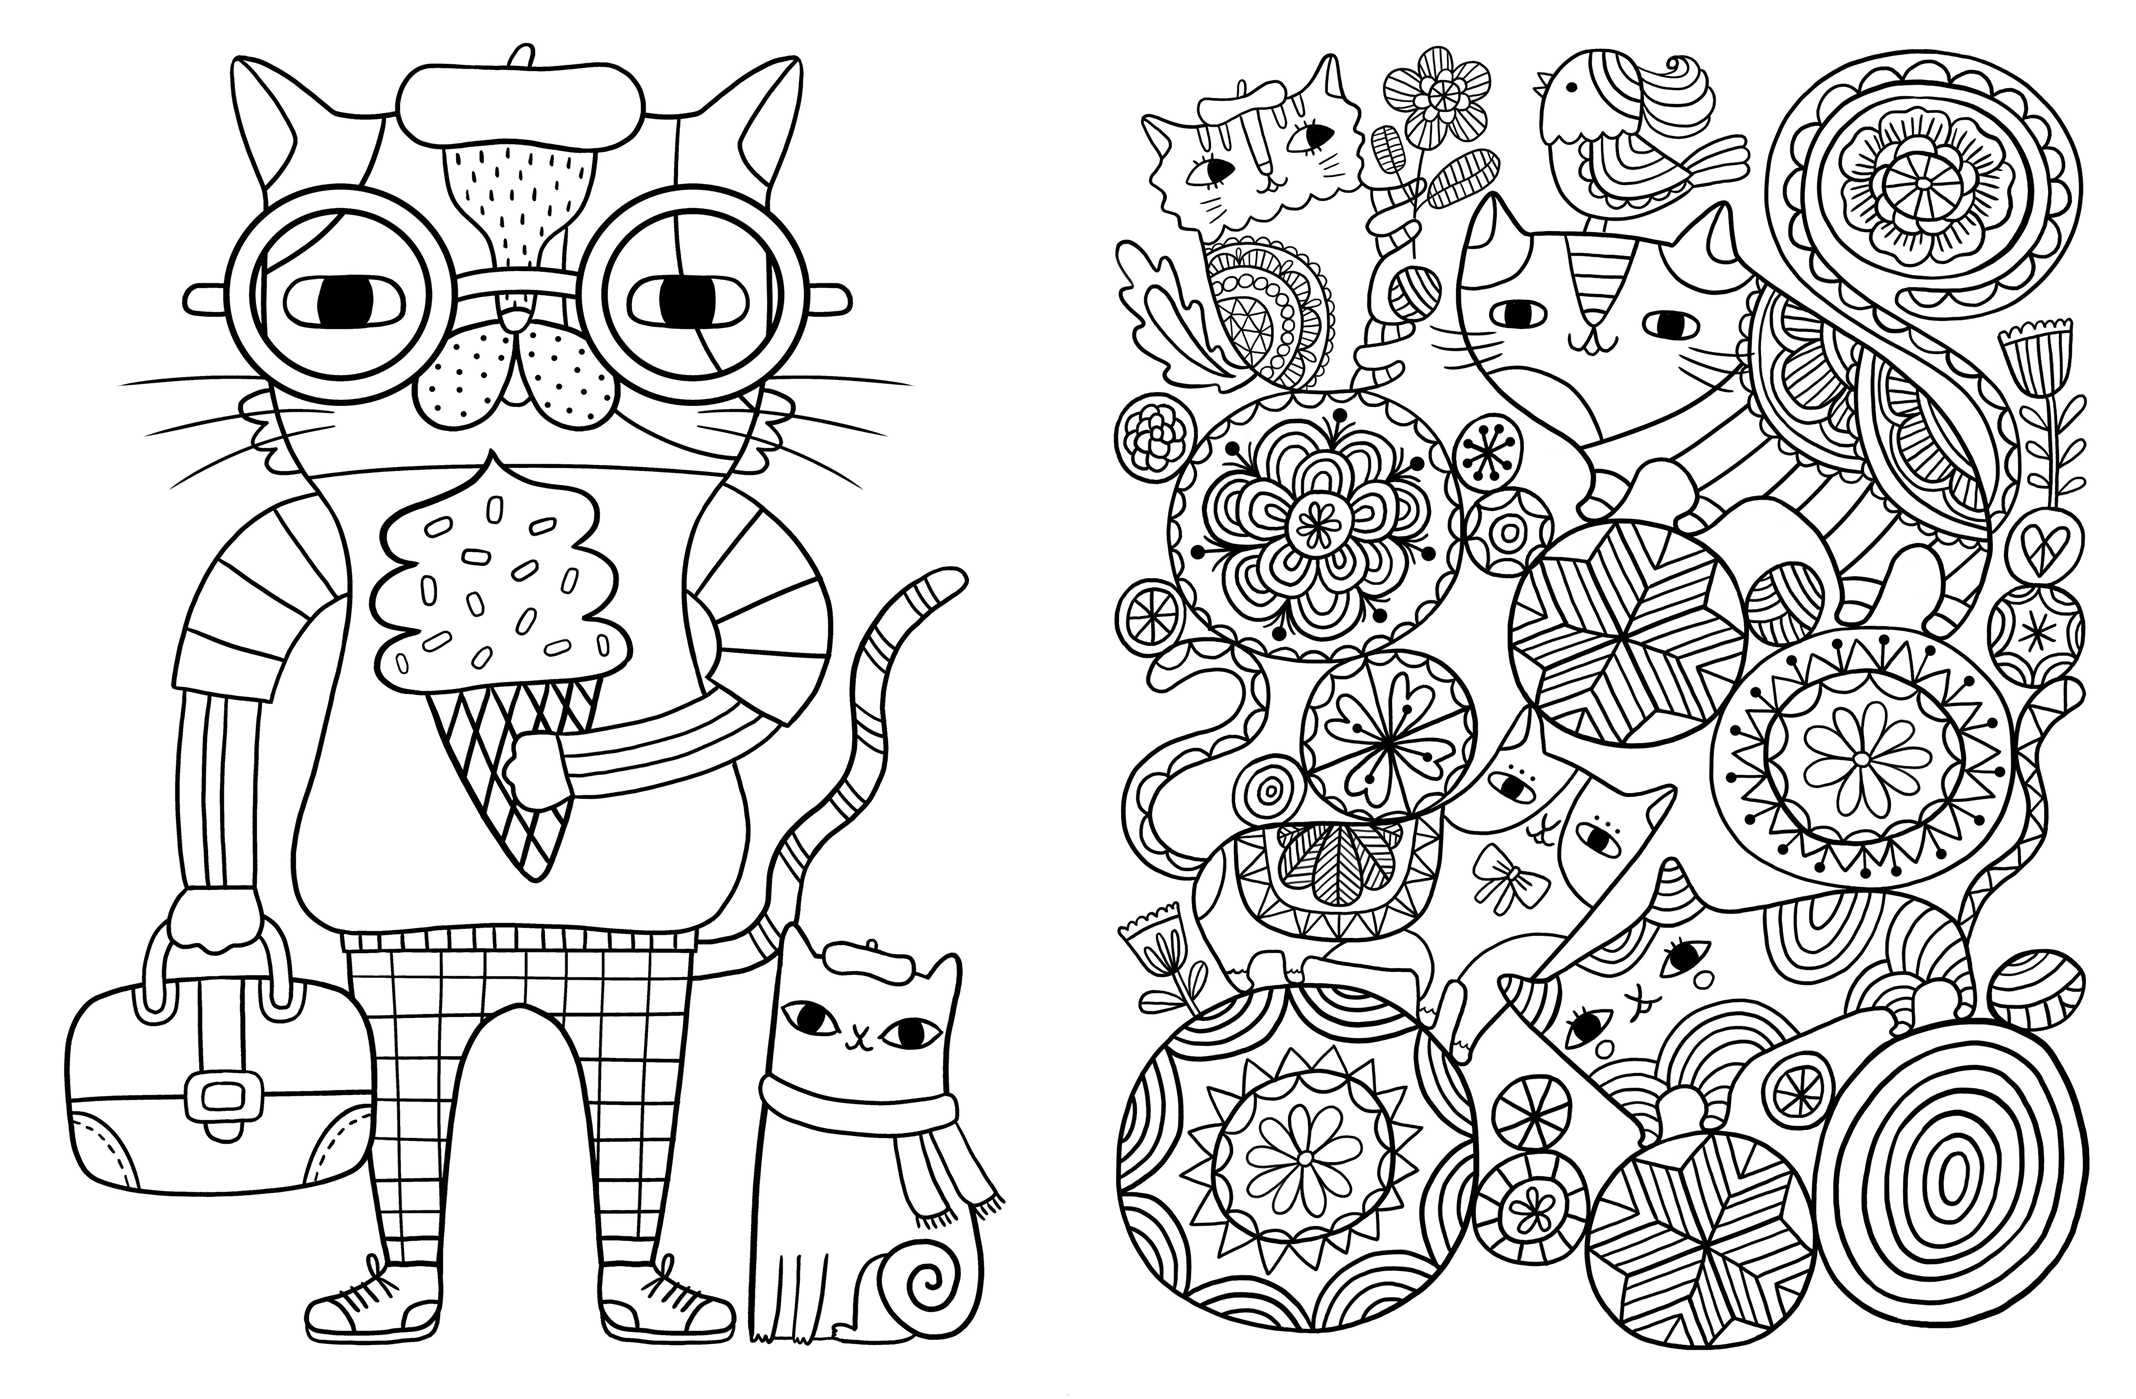 Weird Coloring Pages at GetDrawings.com | Free for personal use ...